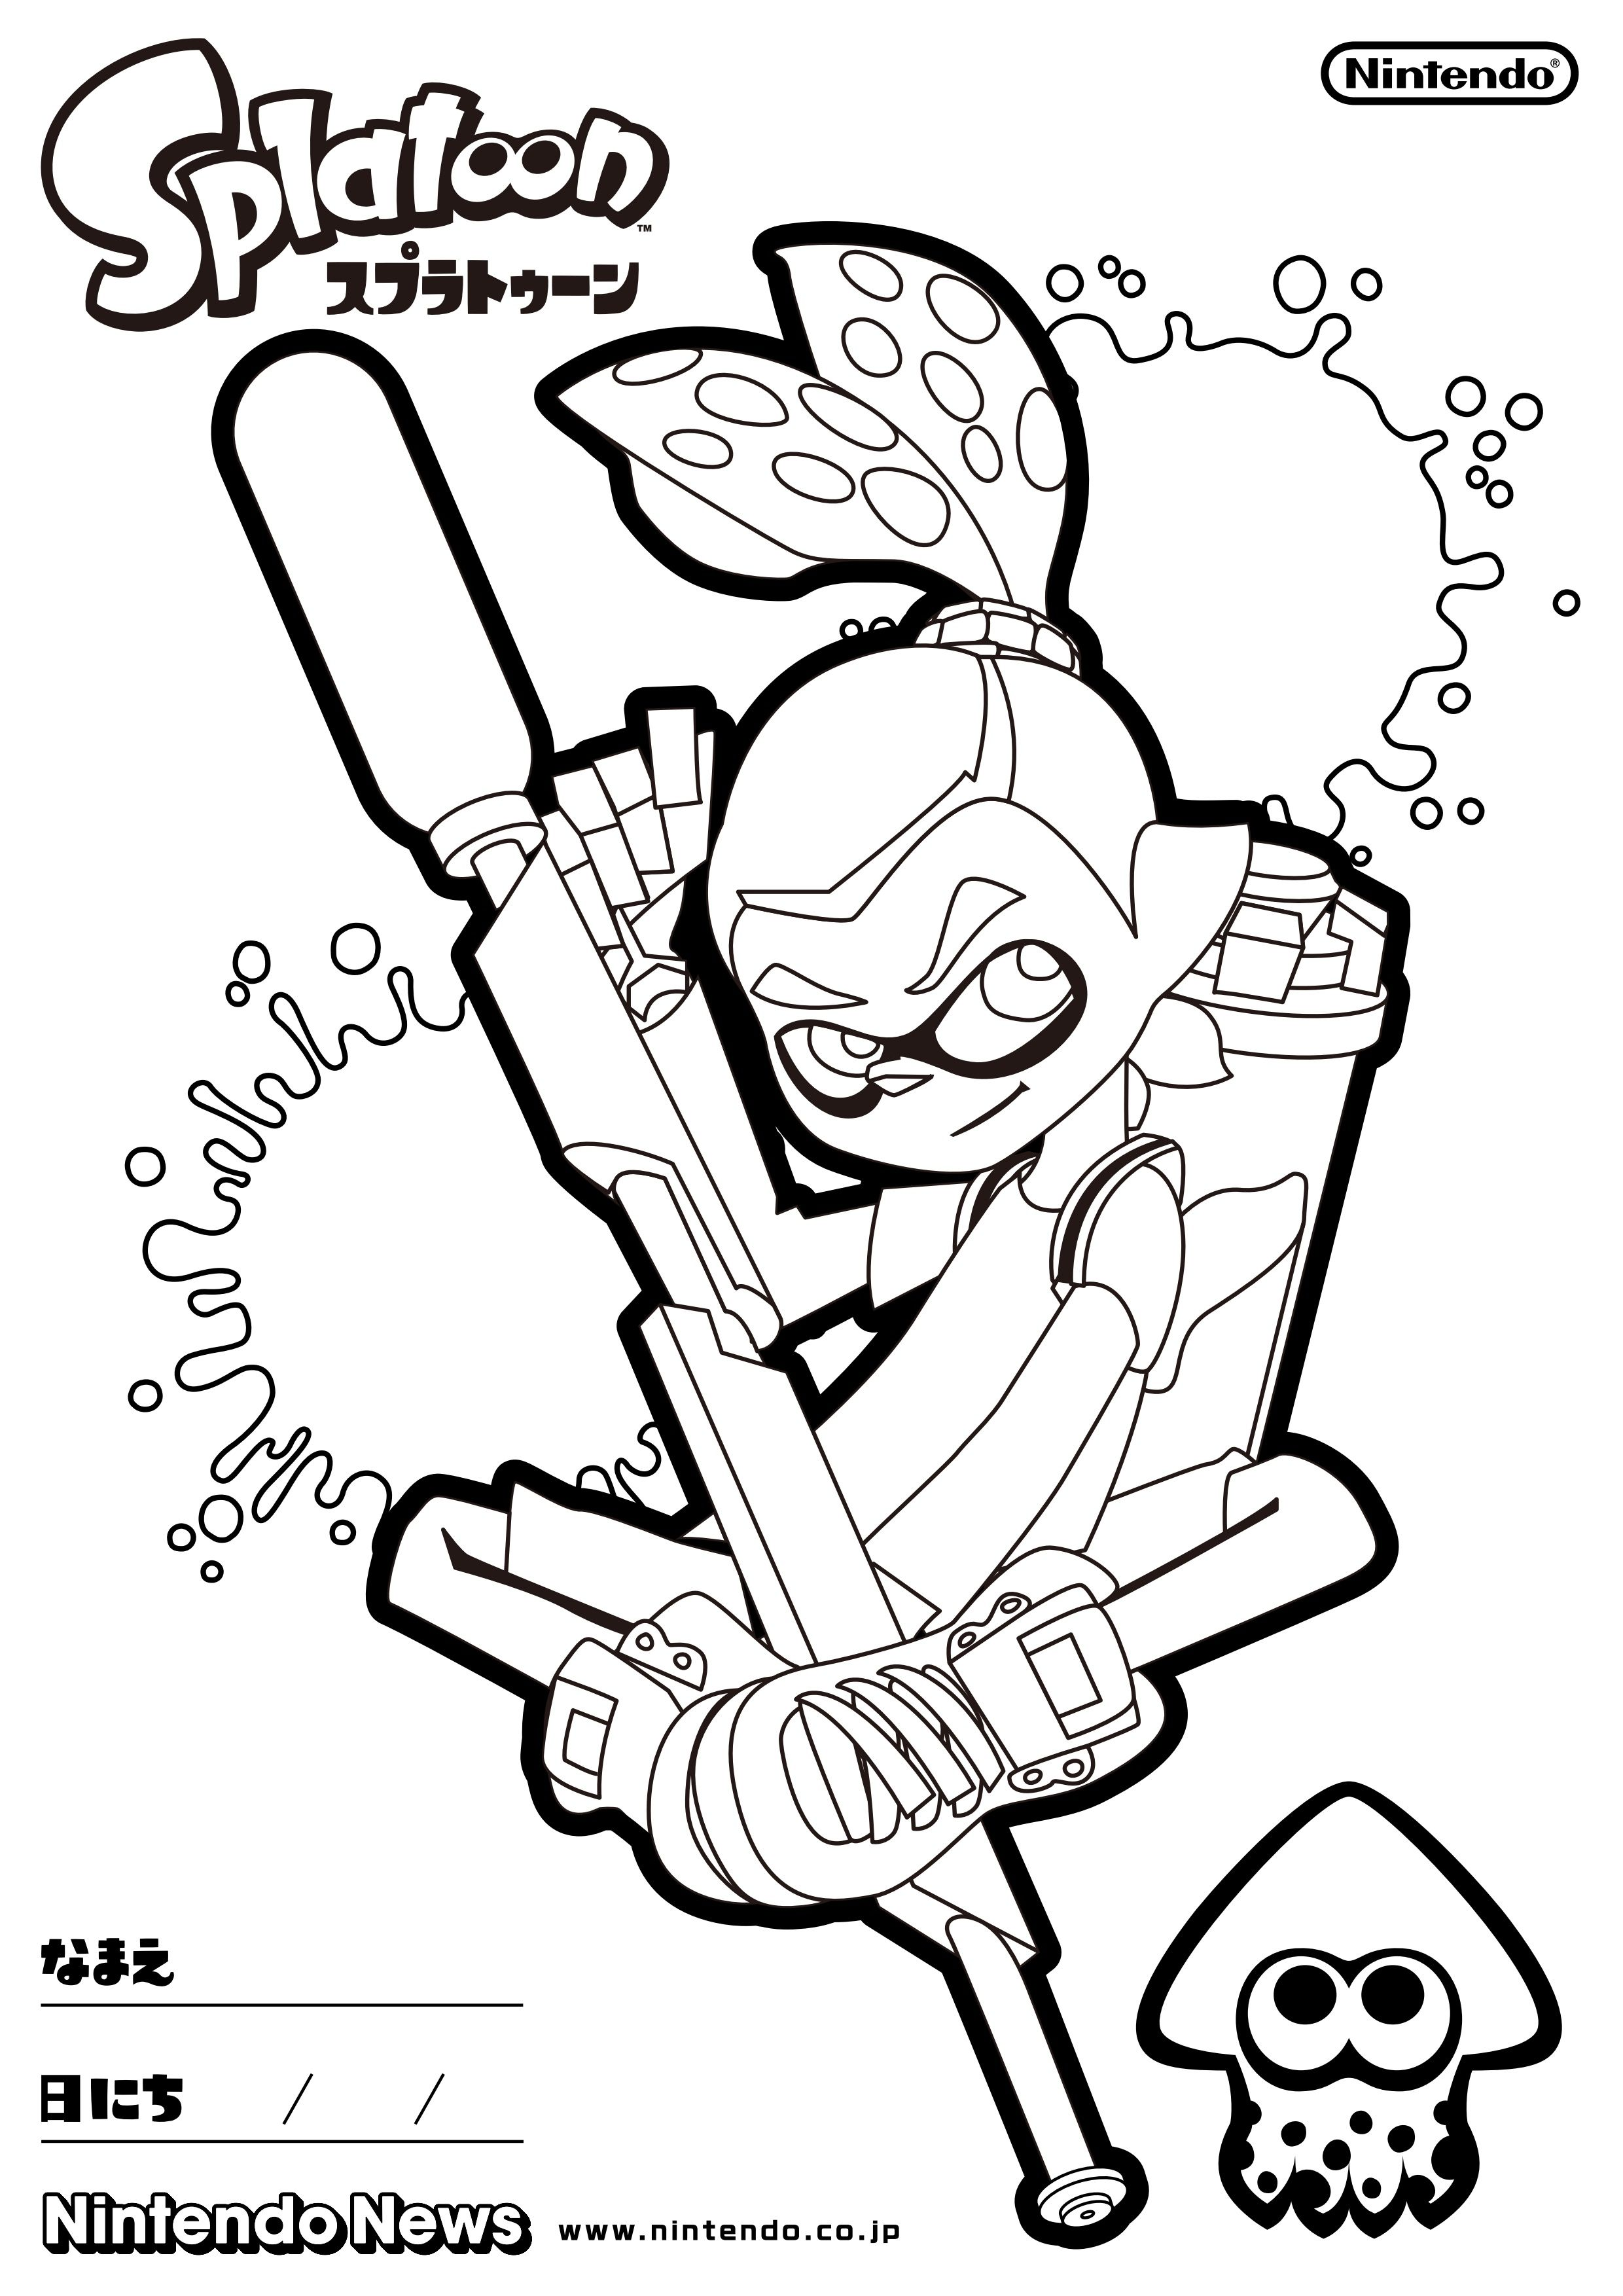 Splatoon 2 Coloring Pages At Getdrawings Com Free For Personal Use